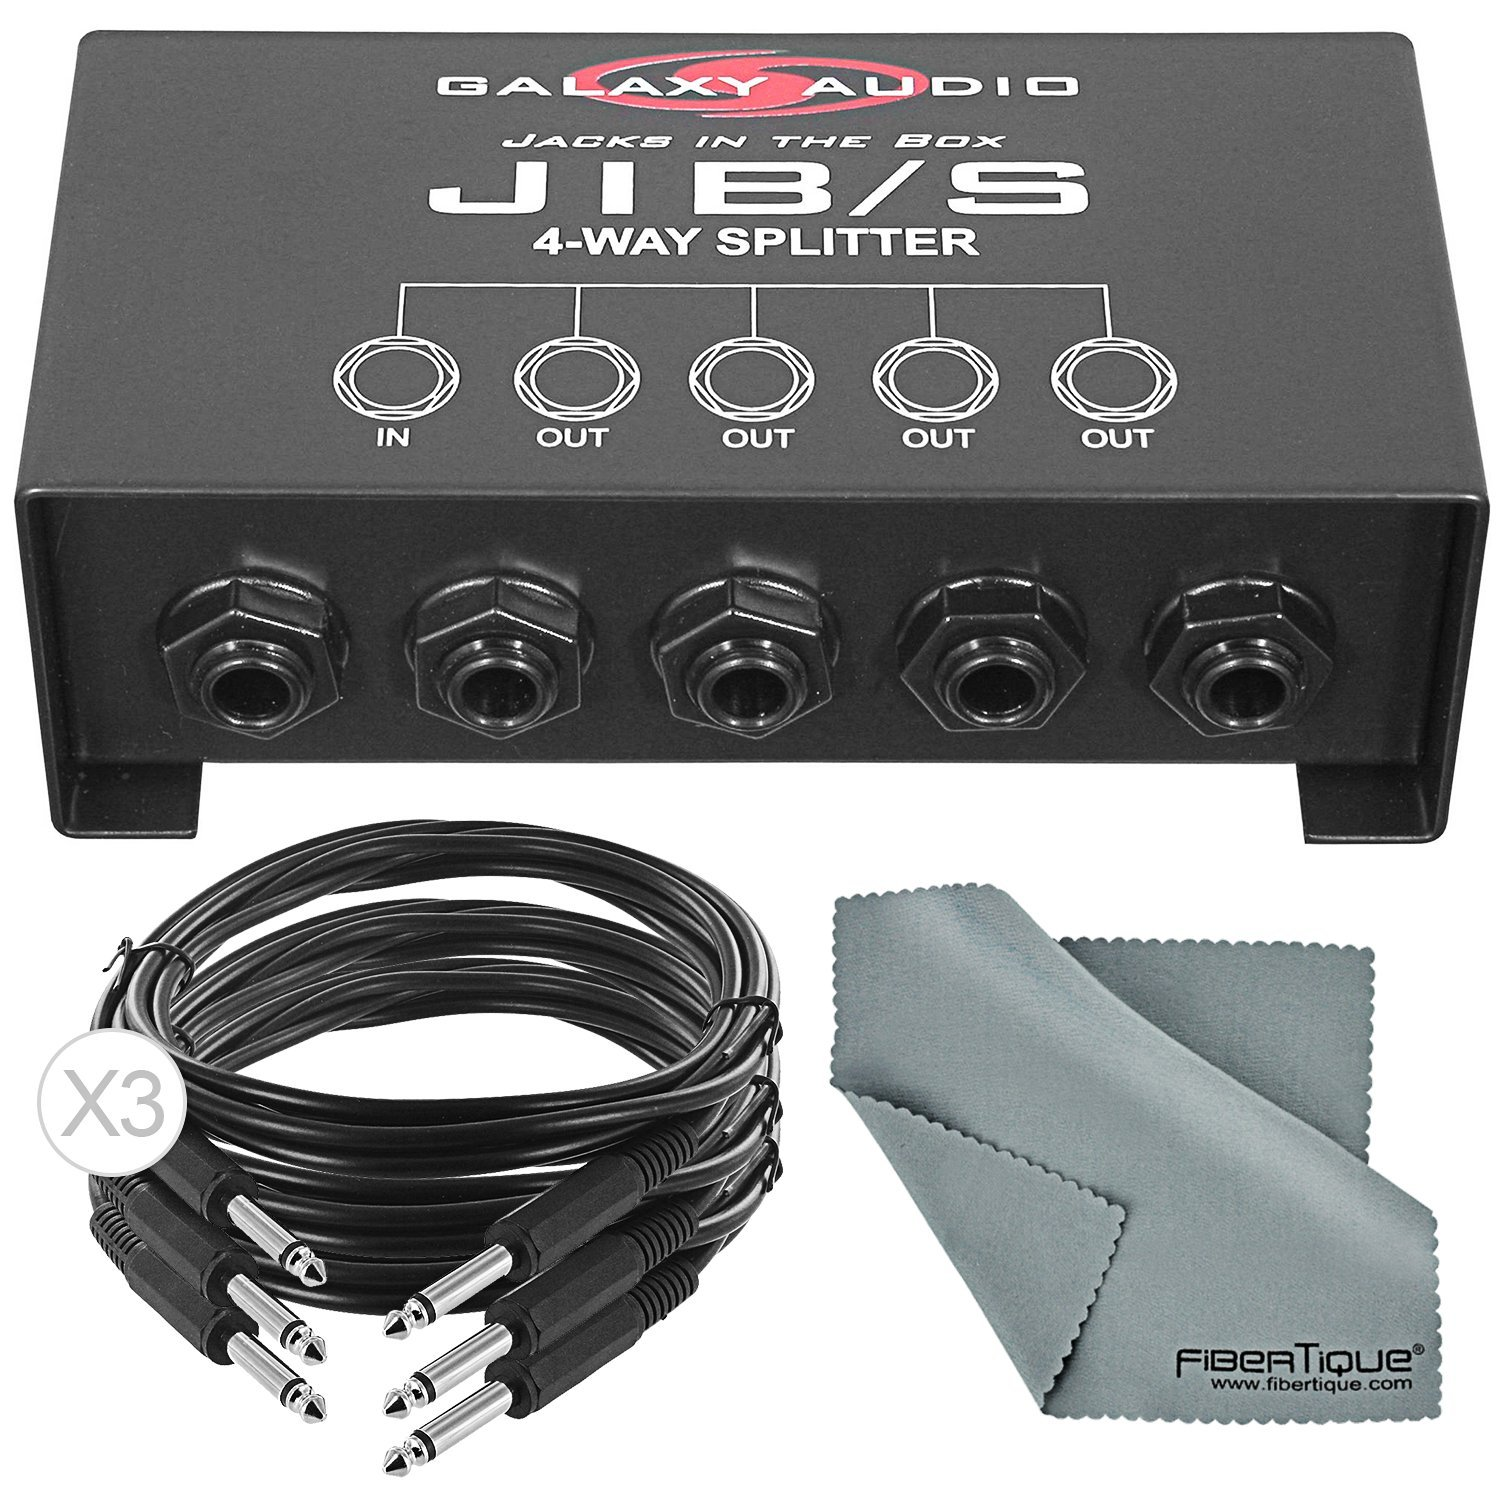 Galaxy Audio JIB/S Jack In The Box Signal Splitter with Cable and Fibertique Cloth Bundle